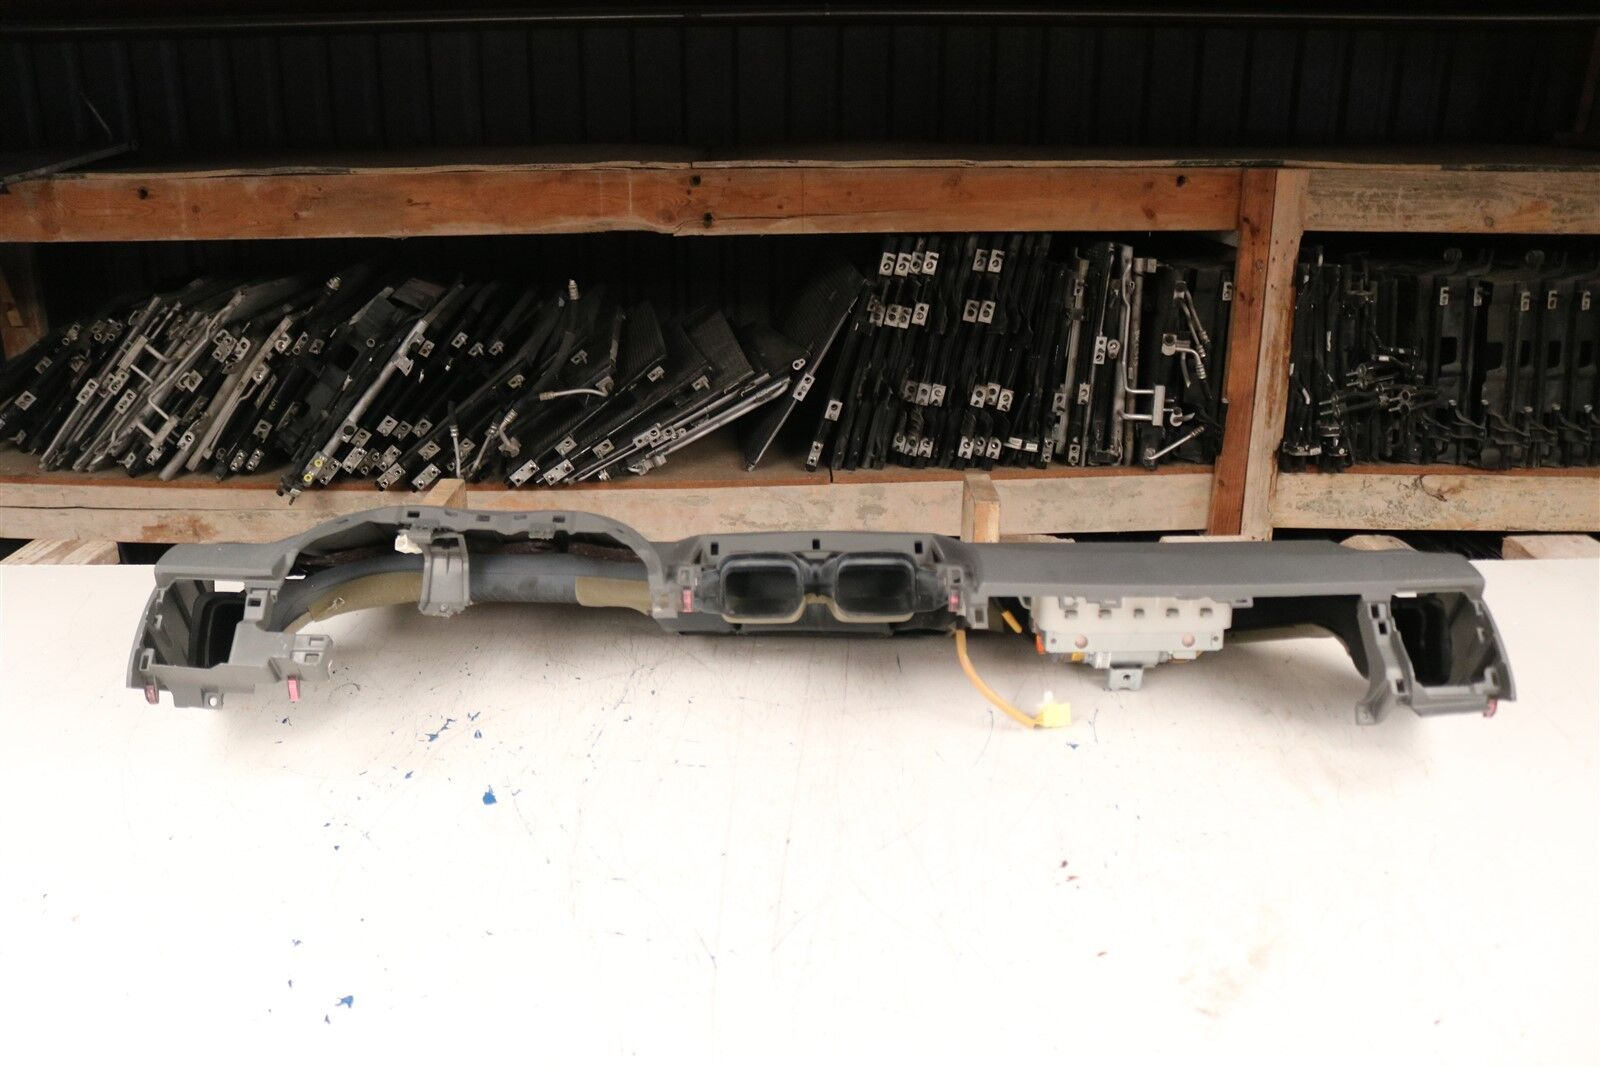 Used 2011 Toyota Corolla Dash Parts For Sale 1996 Fuse Box Old Car 2009 2010 2012 2013 Dashboard